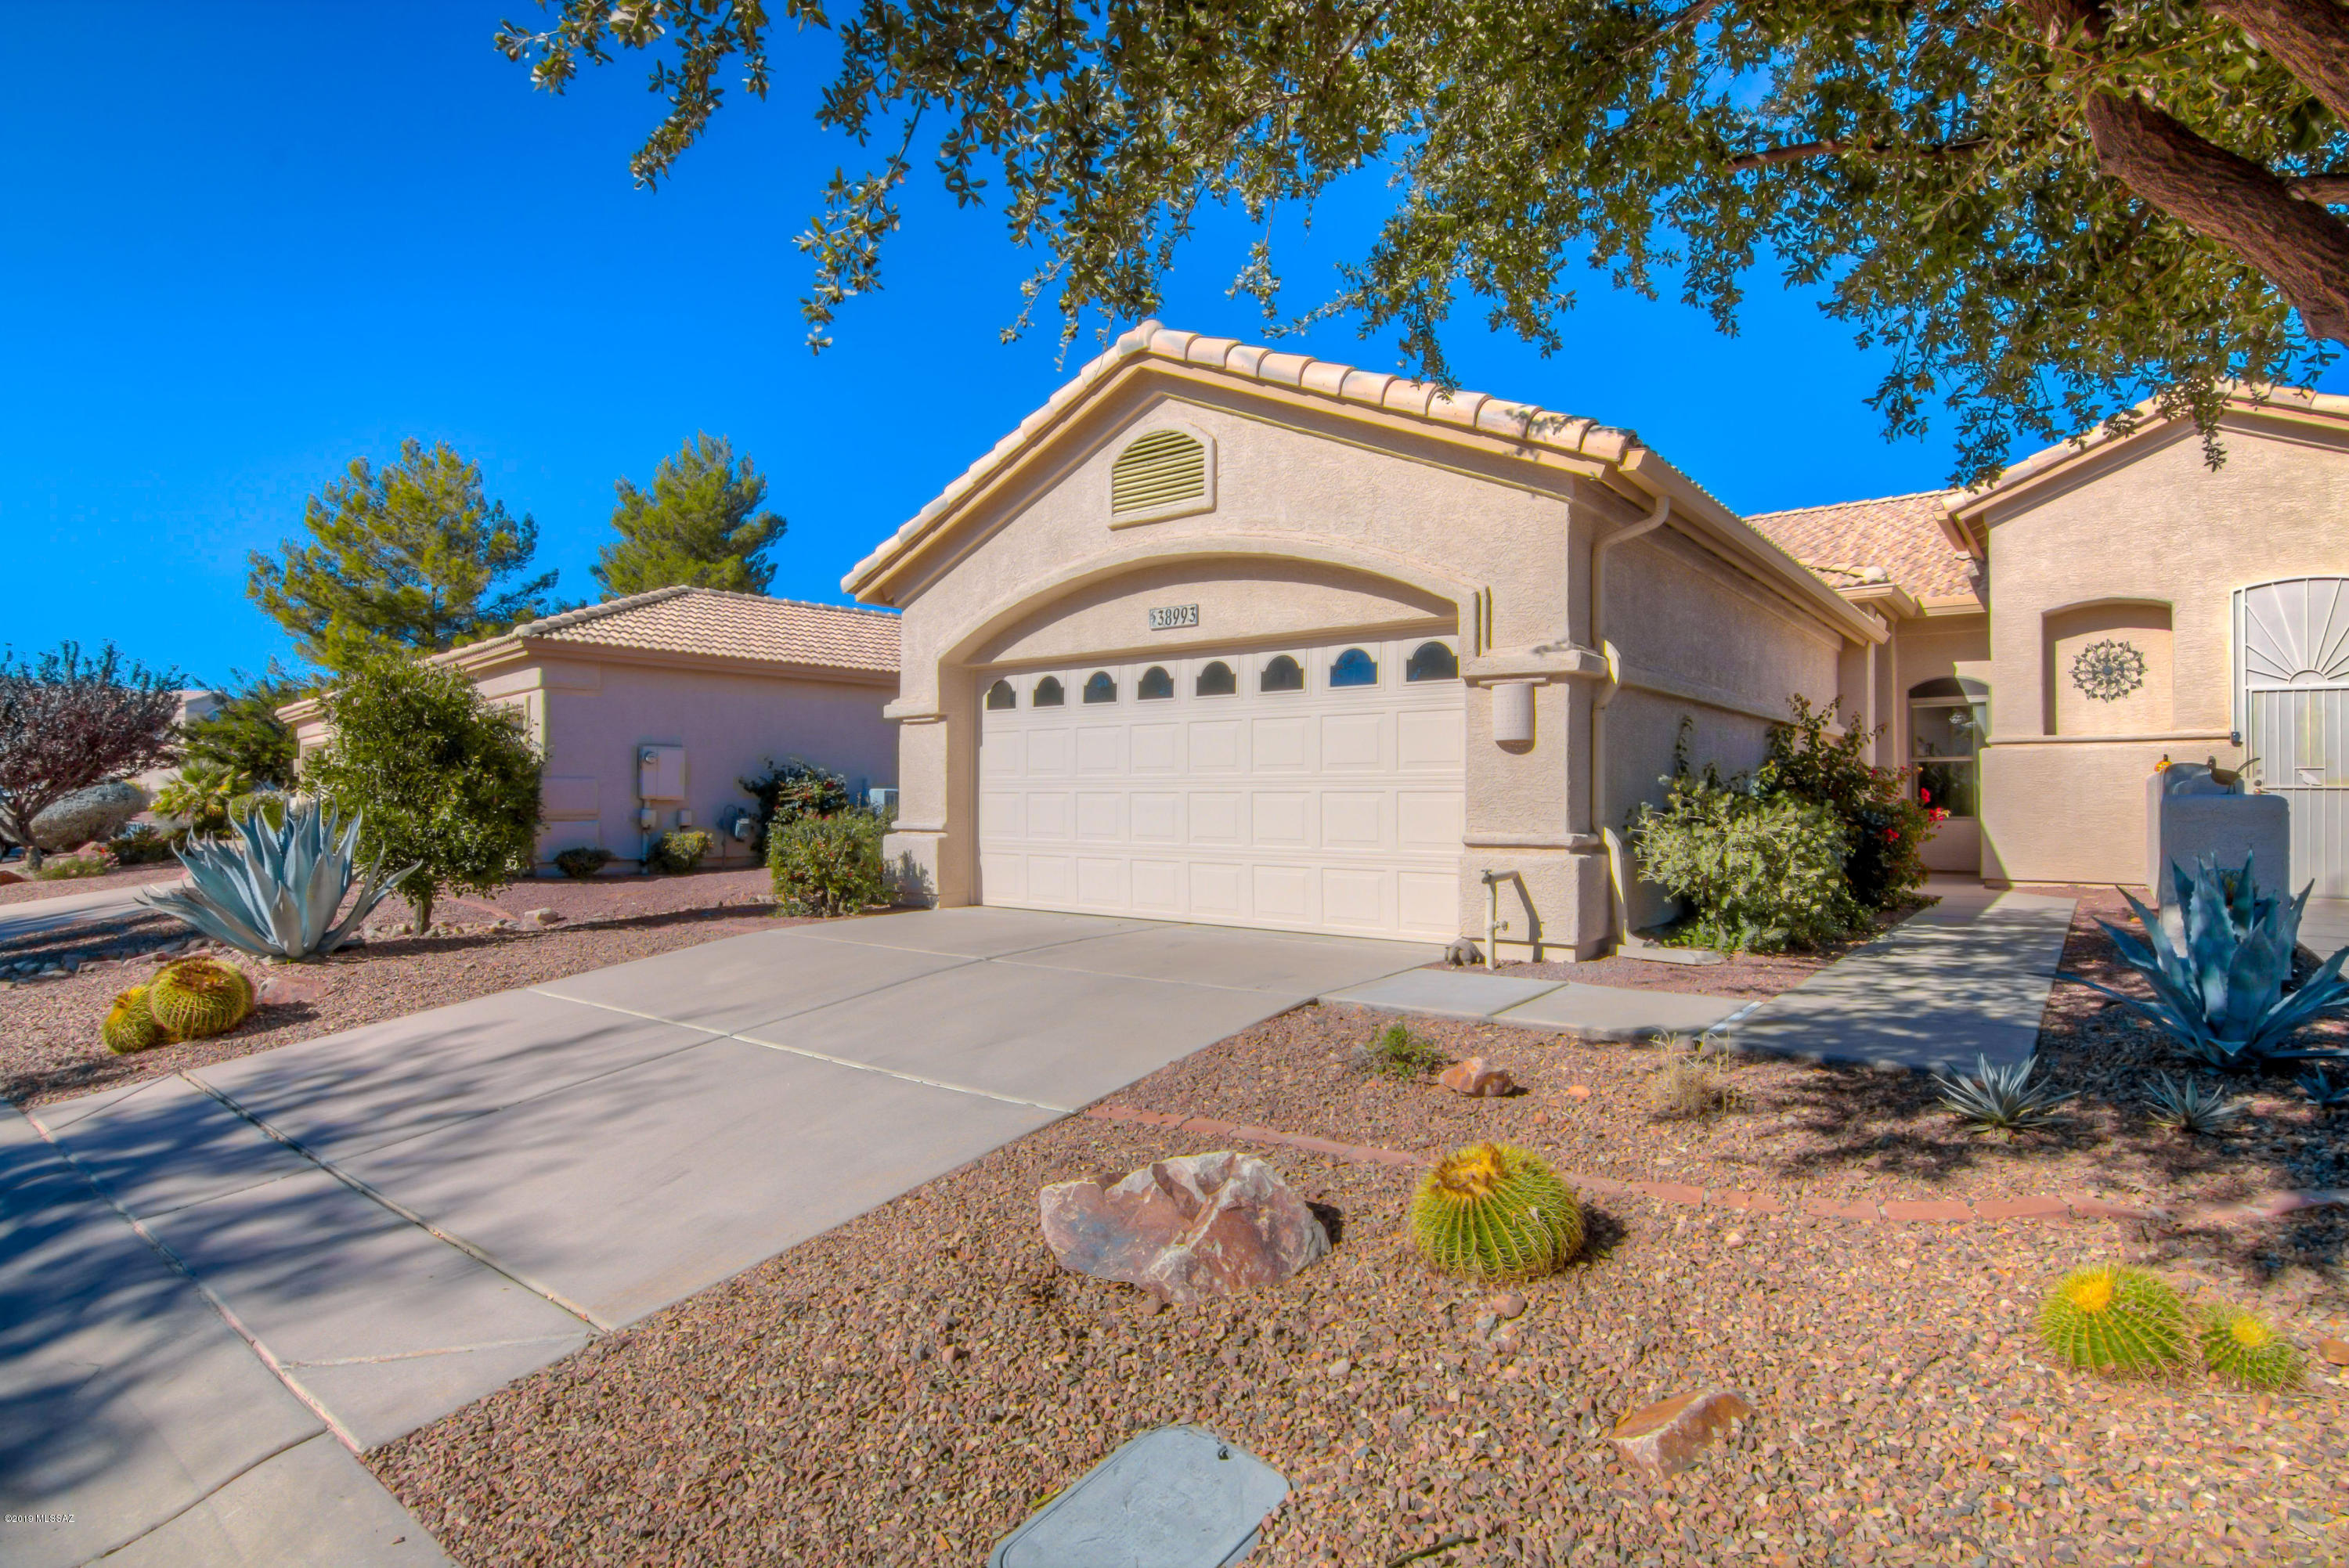 Photo of 38993 S Serenity Lane, Tucson, AZ 85739